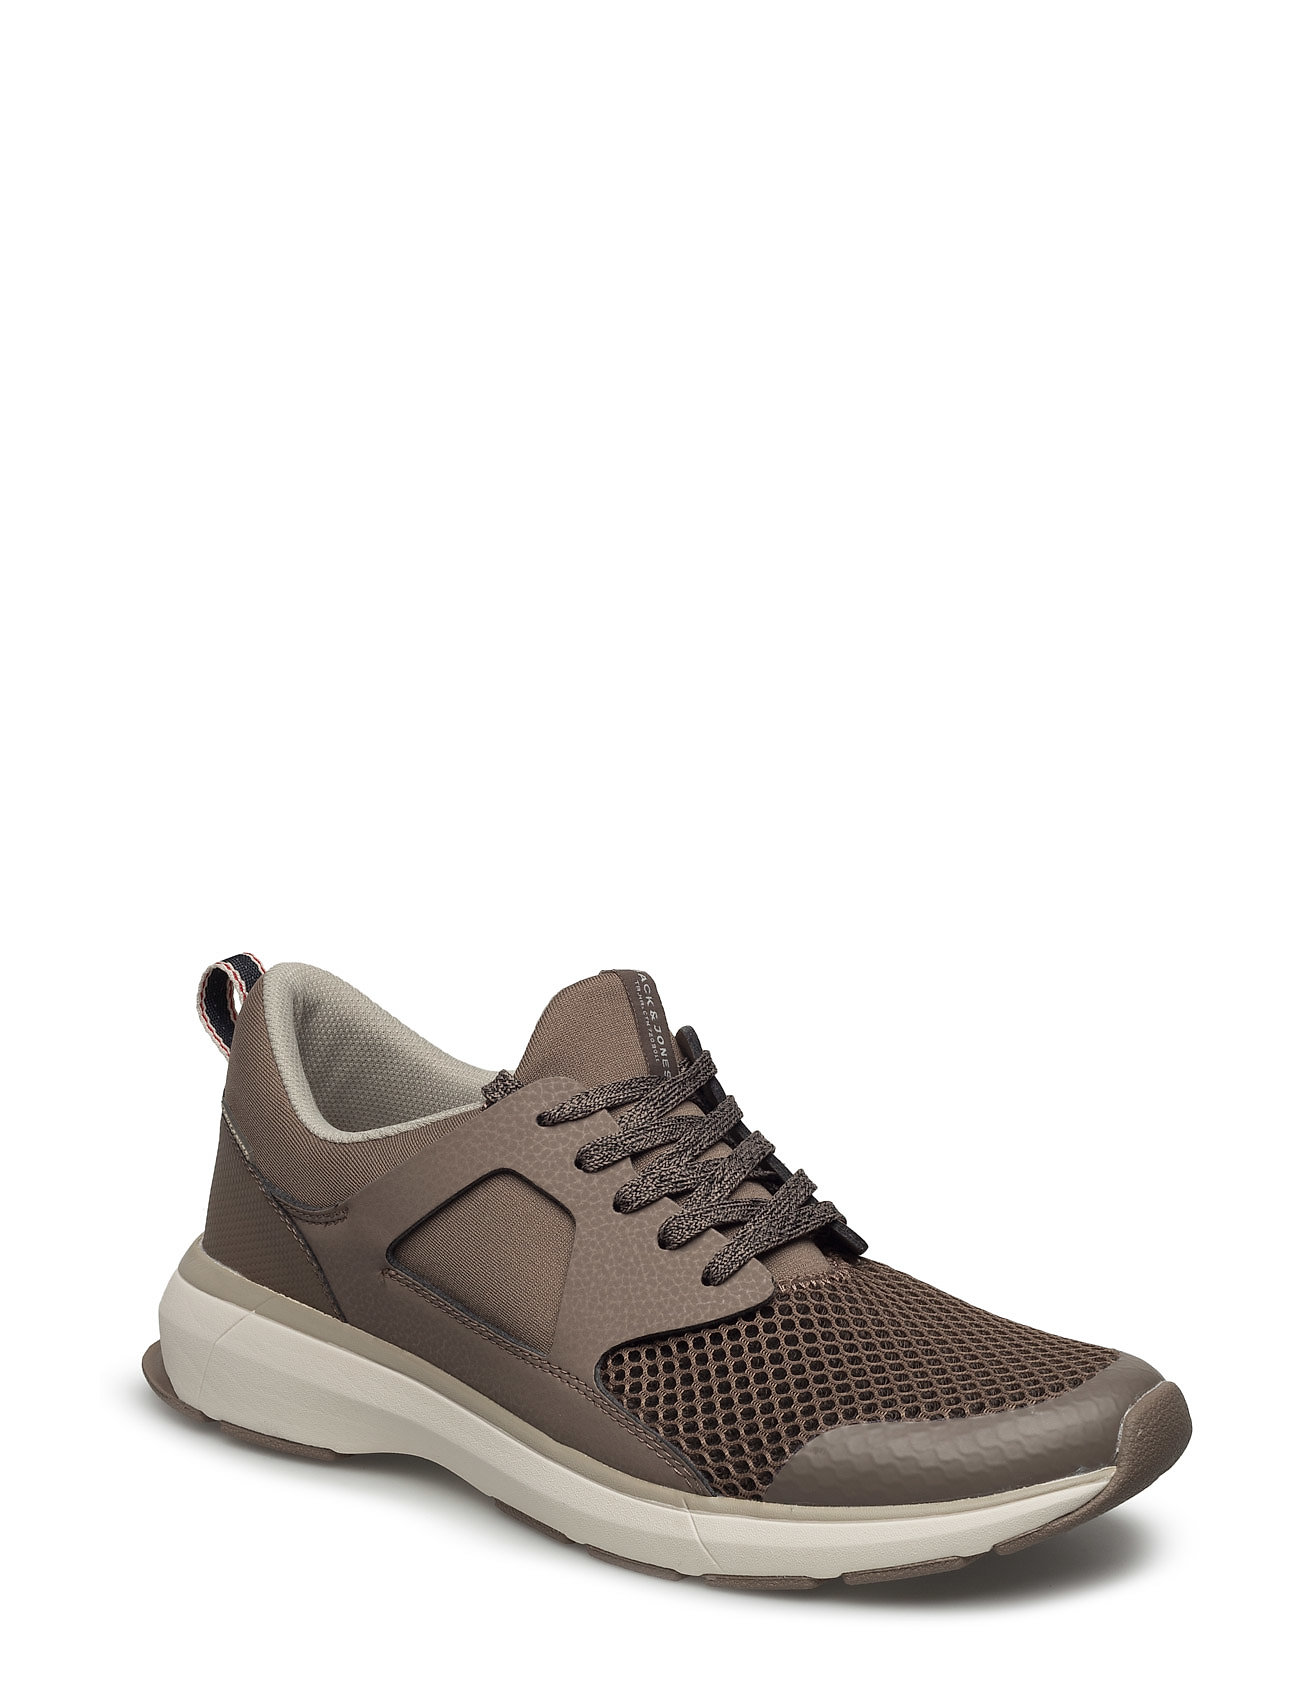 Jfwhatton Mesh Taupe Grey Jack & Jones Sneakers til Herrer i